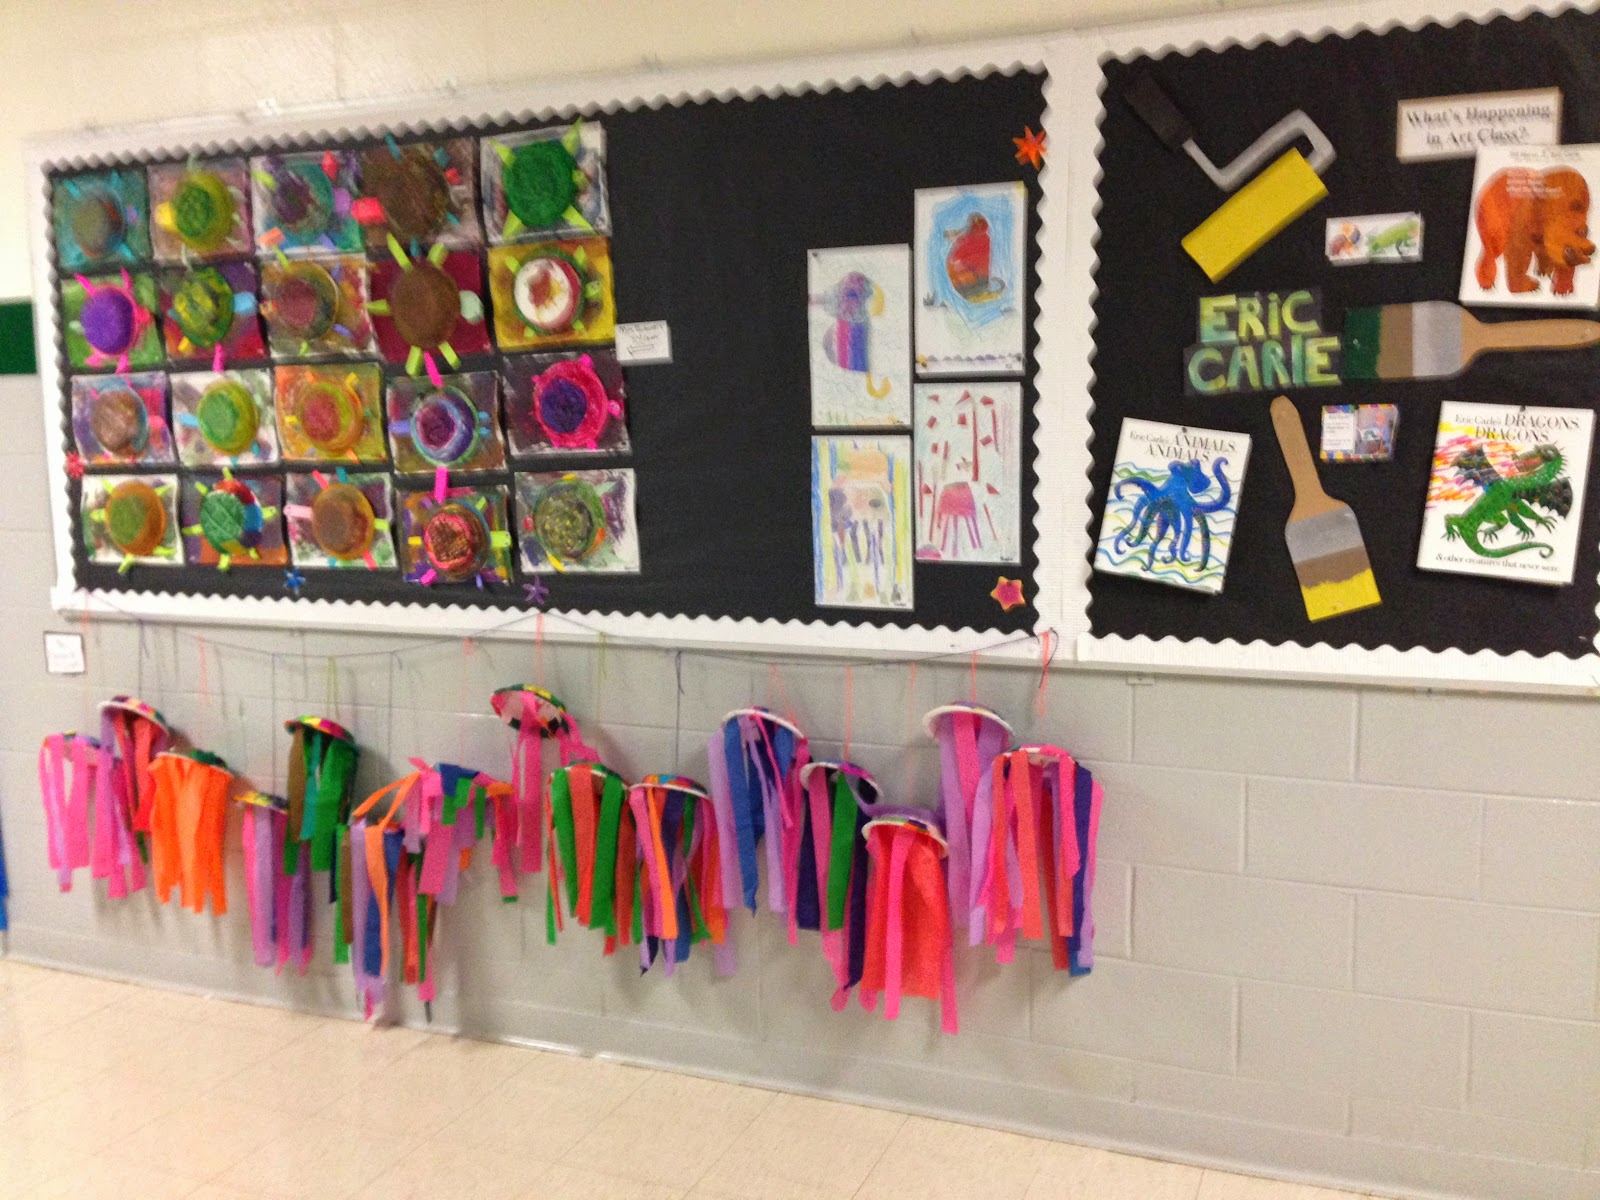 Art from Chaos: Walter Hill's Eric Carle Show - photo#39